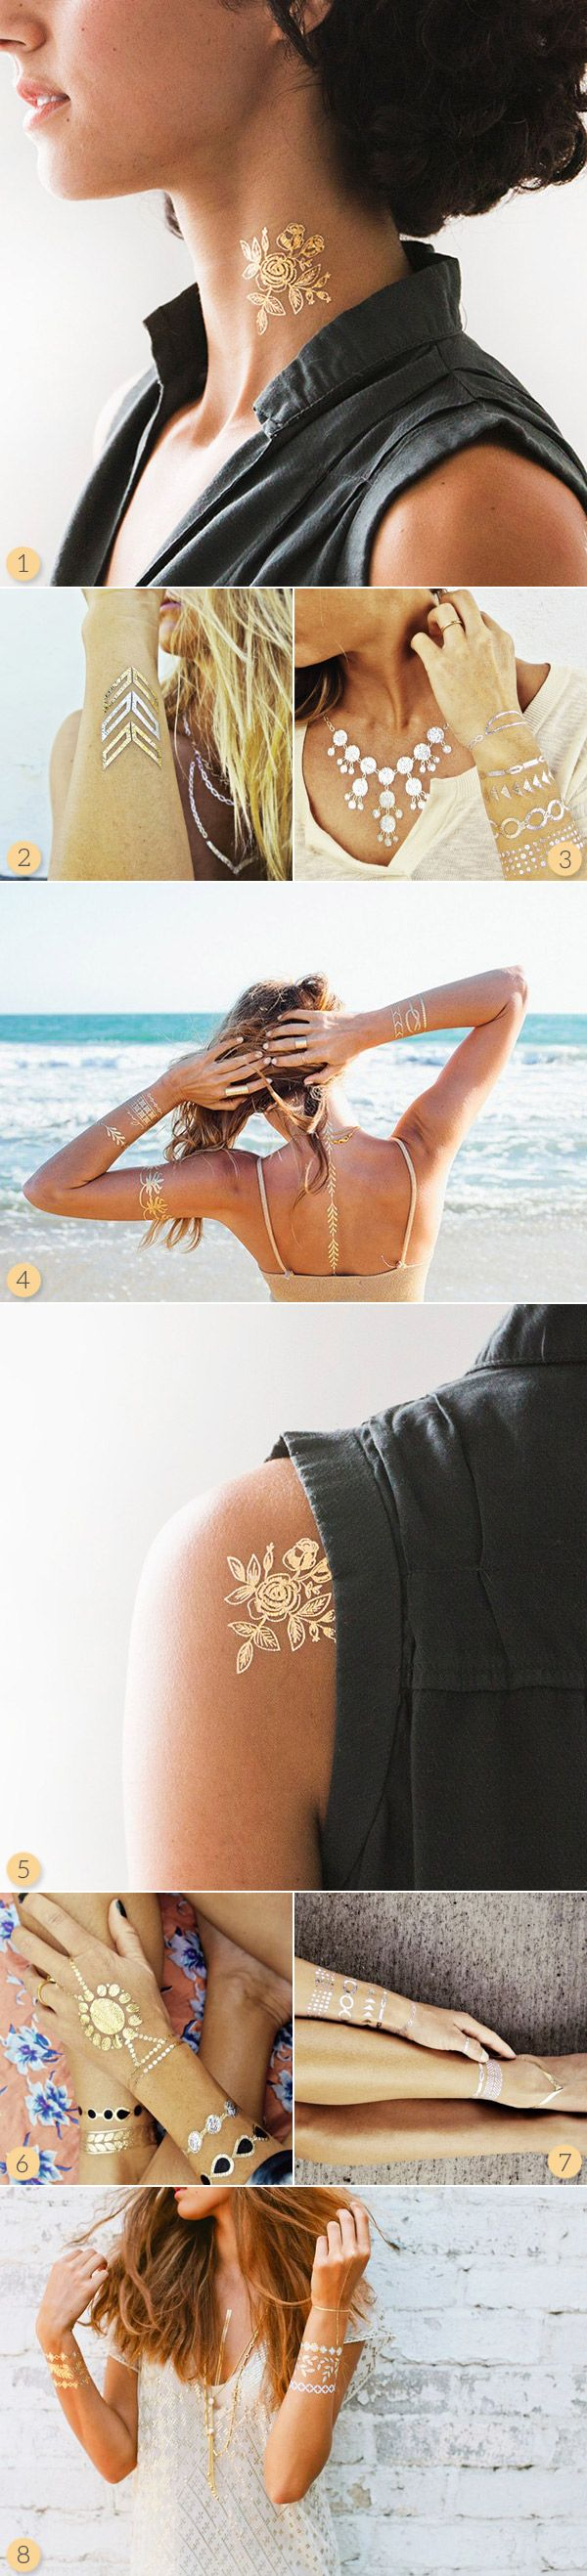 Loving Metallic Gold Temporary Tattoos